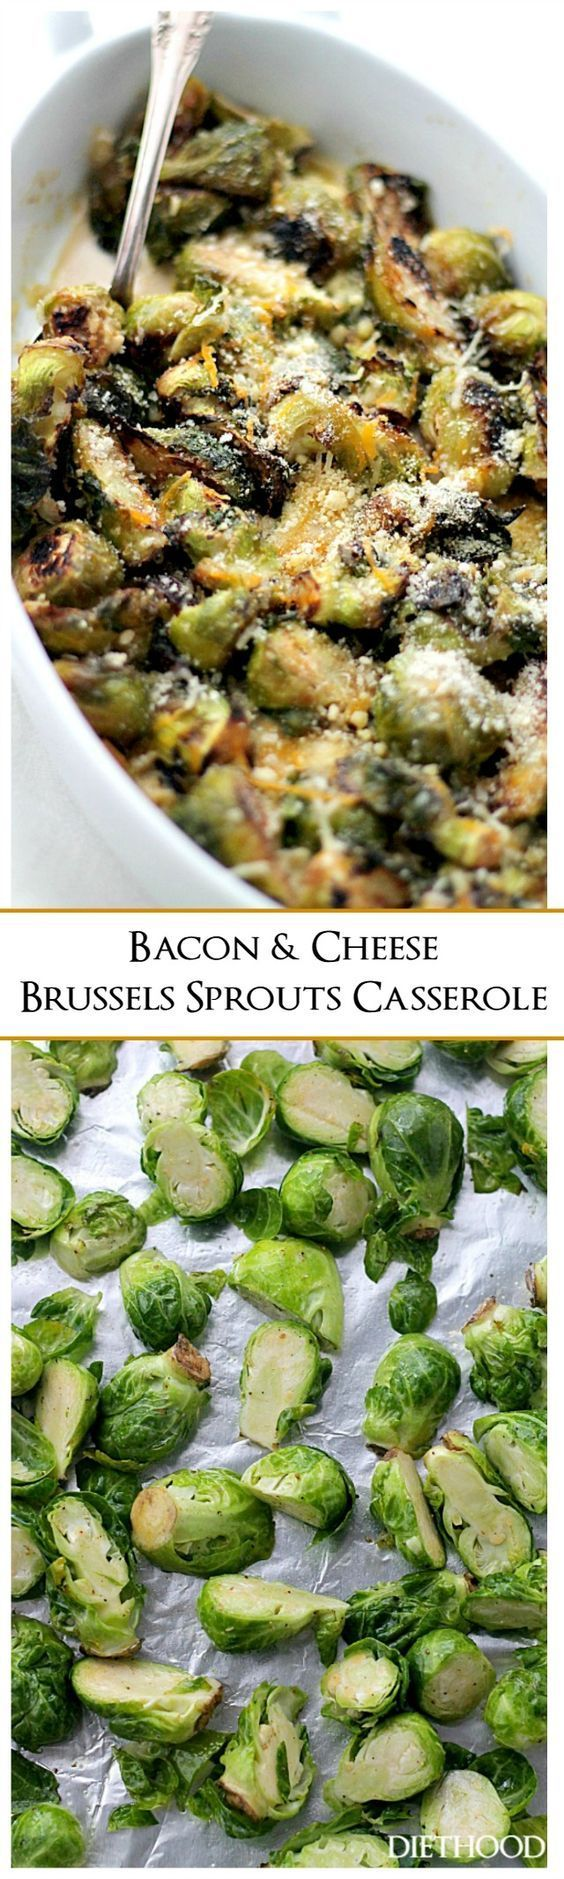 Bacon and Cheese Brussels Sprouts Casserole | www.diethood.com | Roasted brussels sprouts tossed with bacon and baked in a creamy cheese sauce.